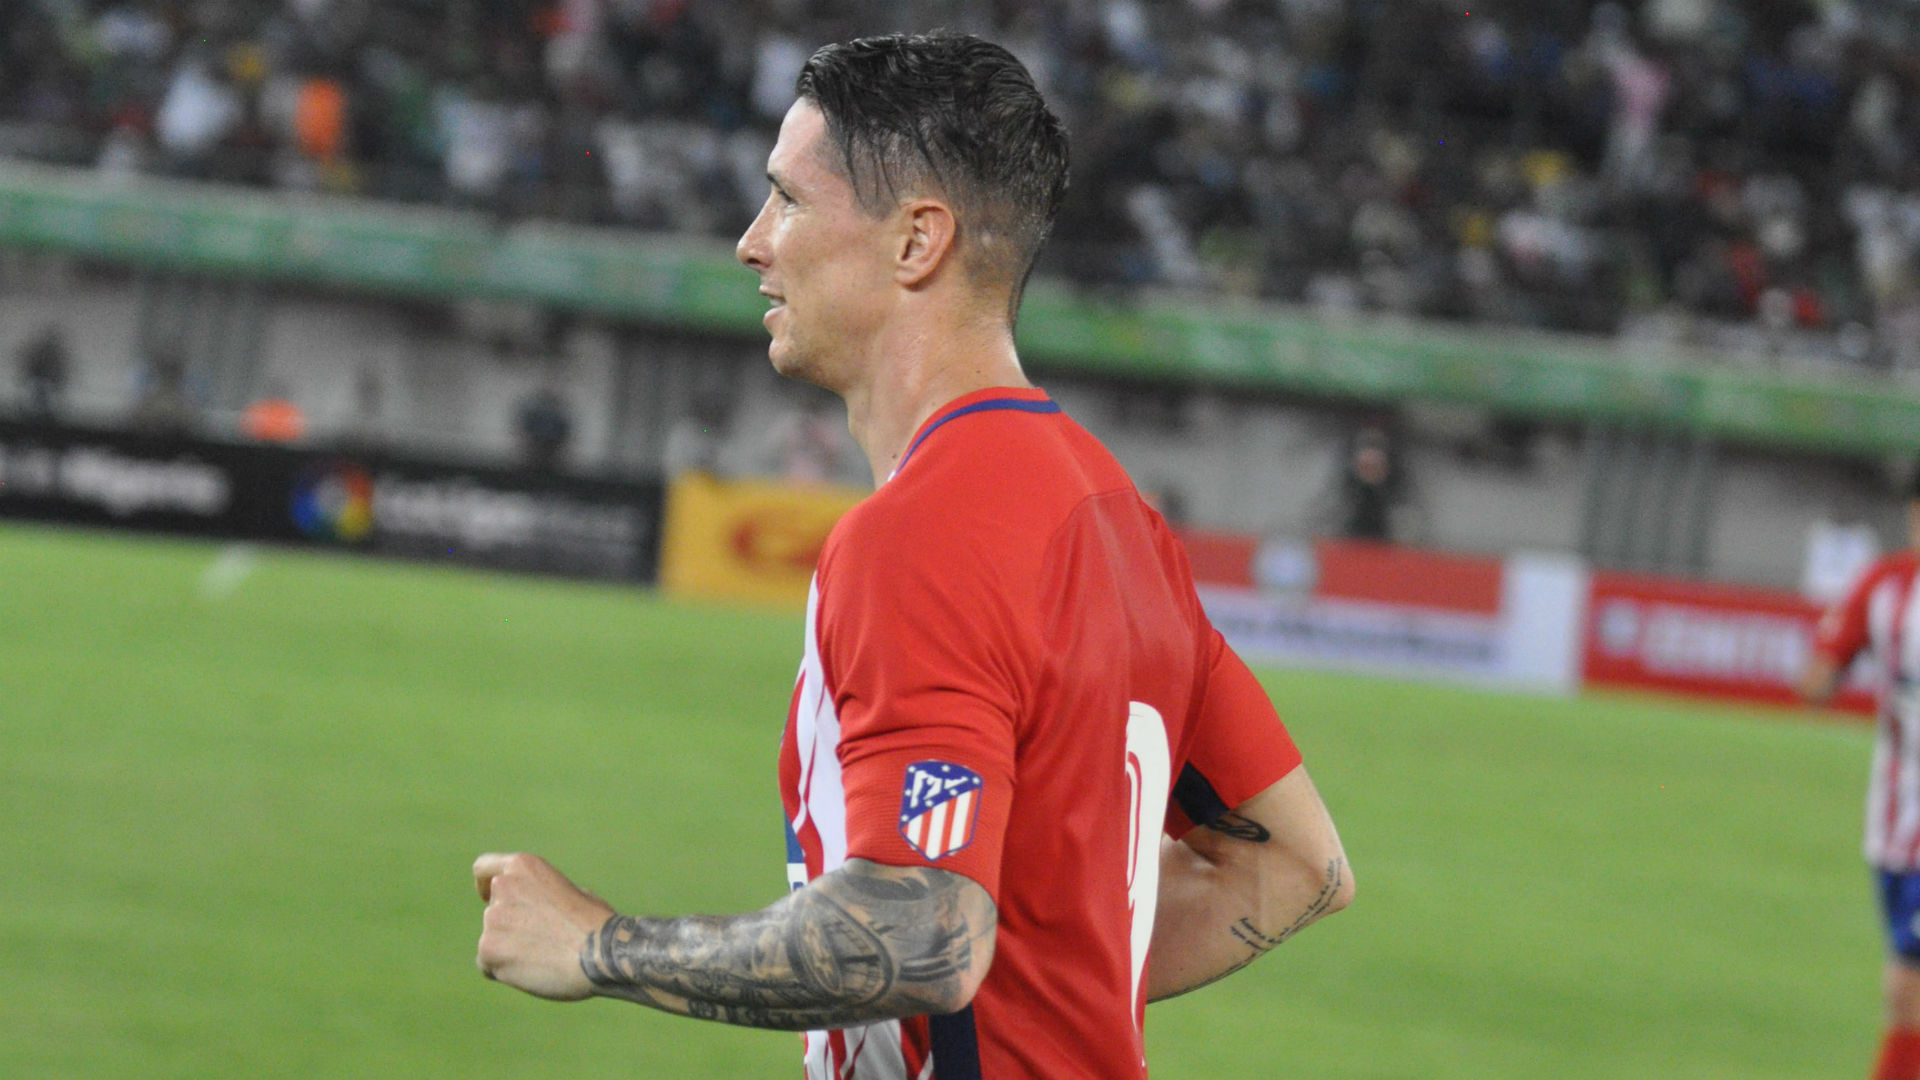 Fernando Torres has confirmed which club he will play for next